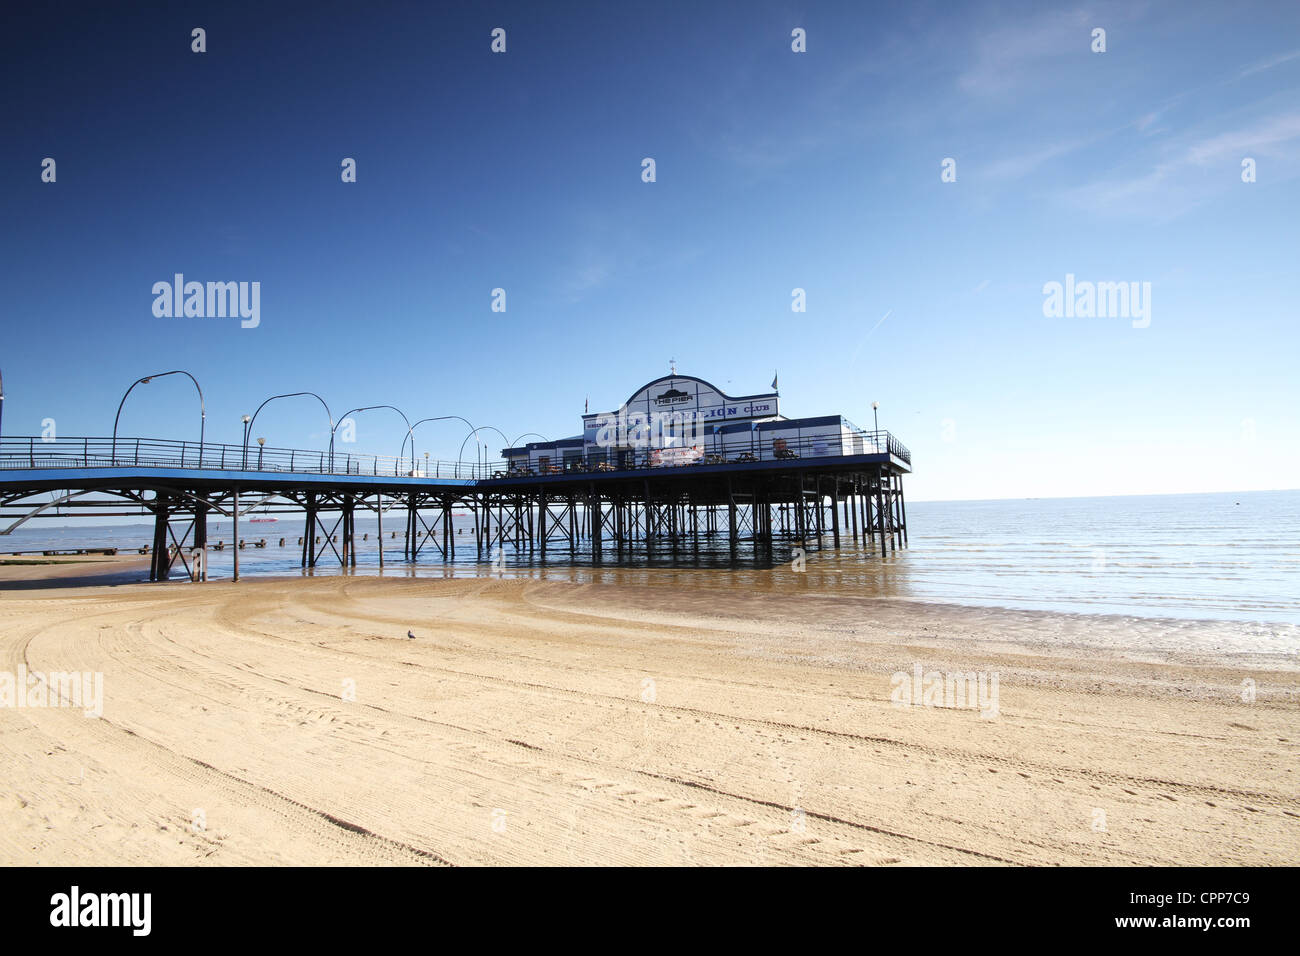 Cleethorpes Pier The Coast of Lincolnshire - Stock Image